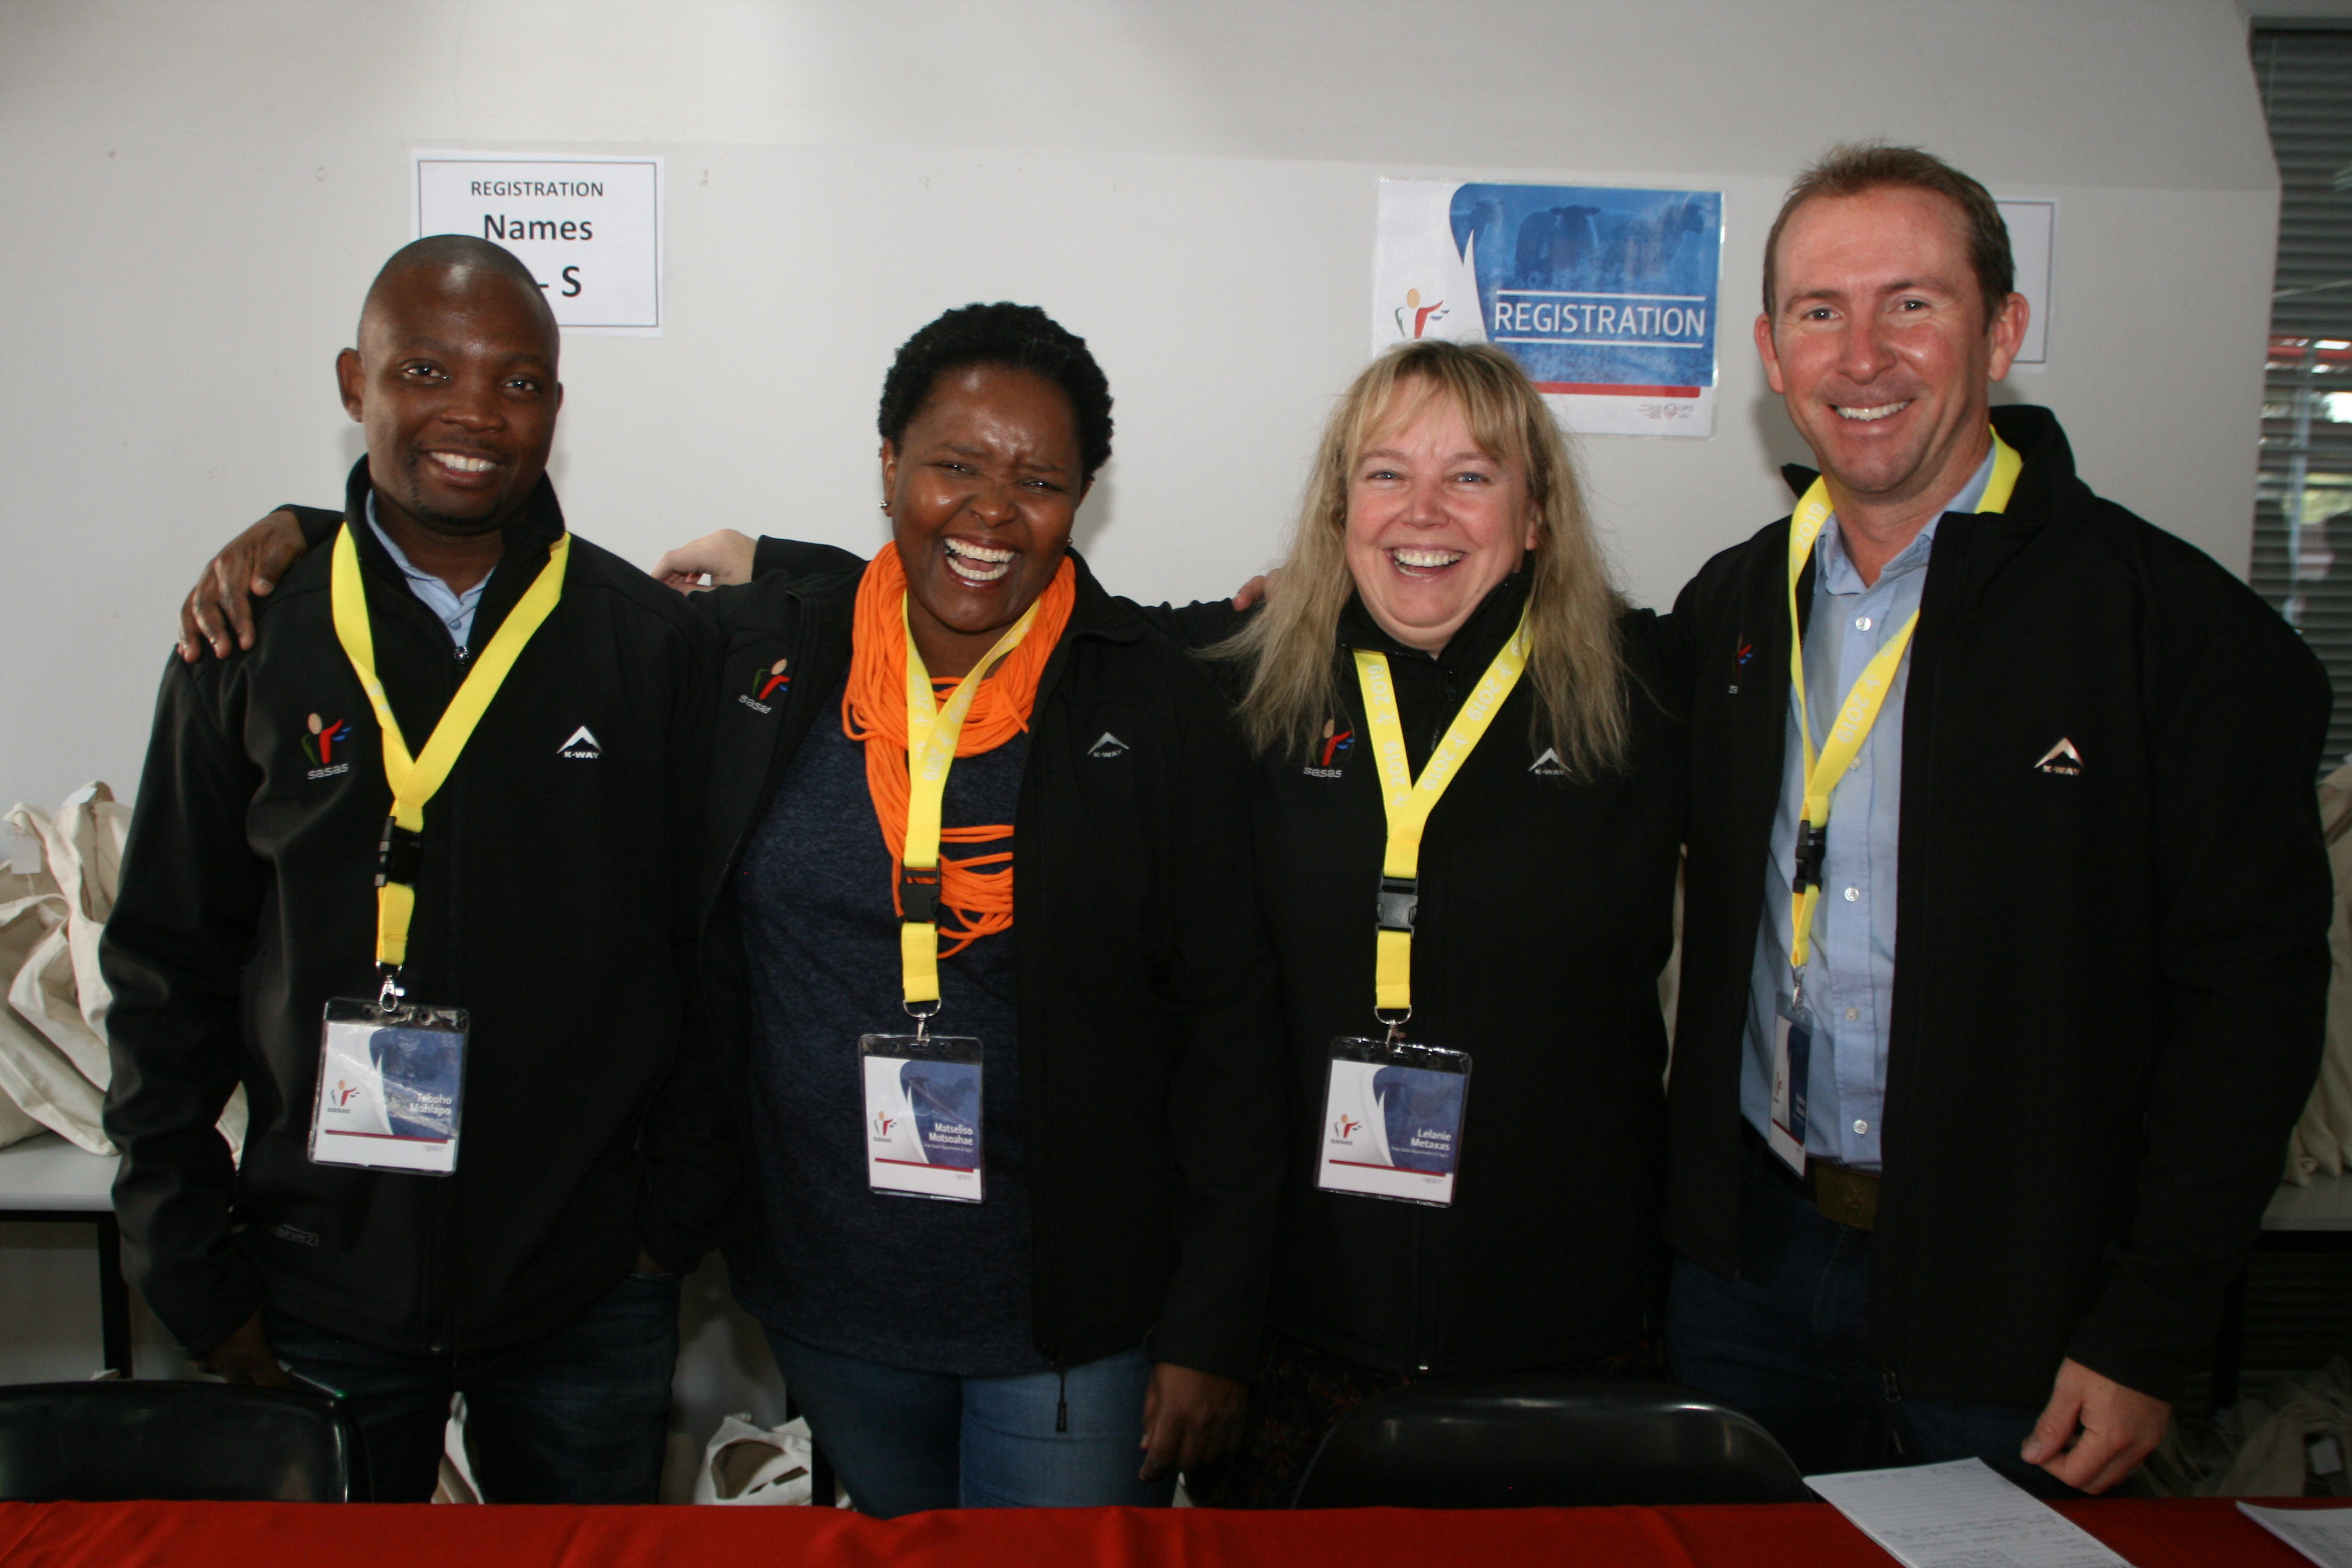 Delegates at the SASA Congress